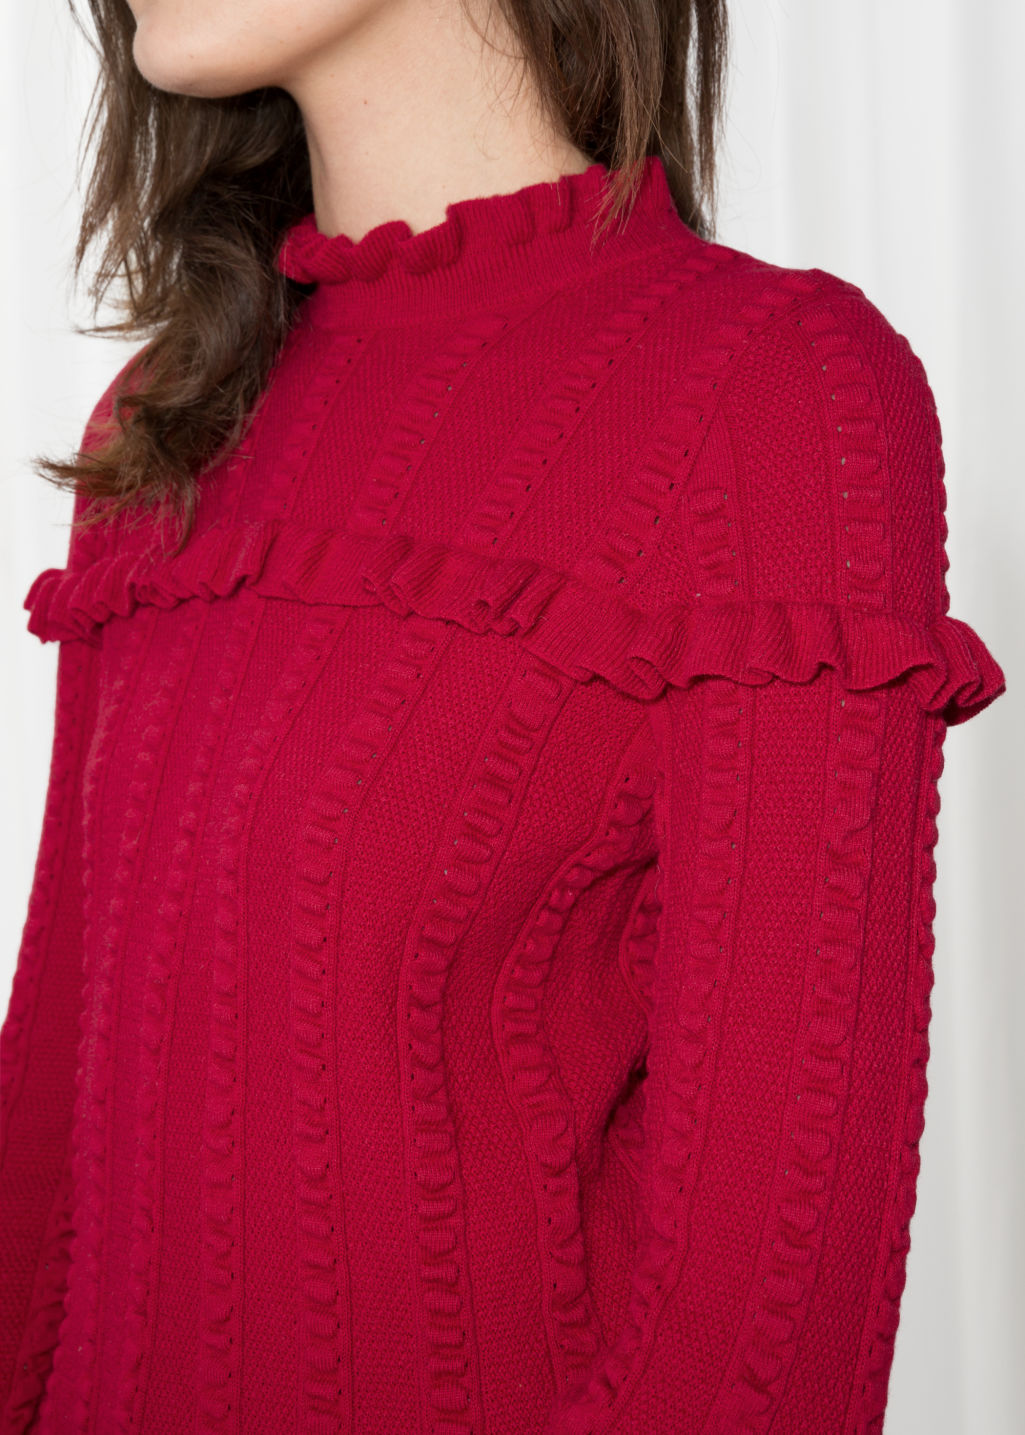 Detailed image of Stories ruffle knit sweater in red